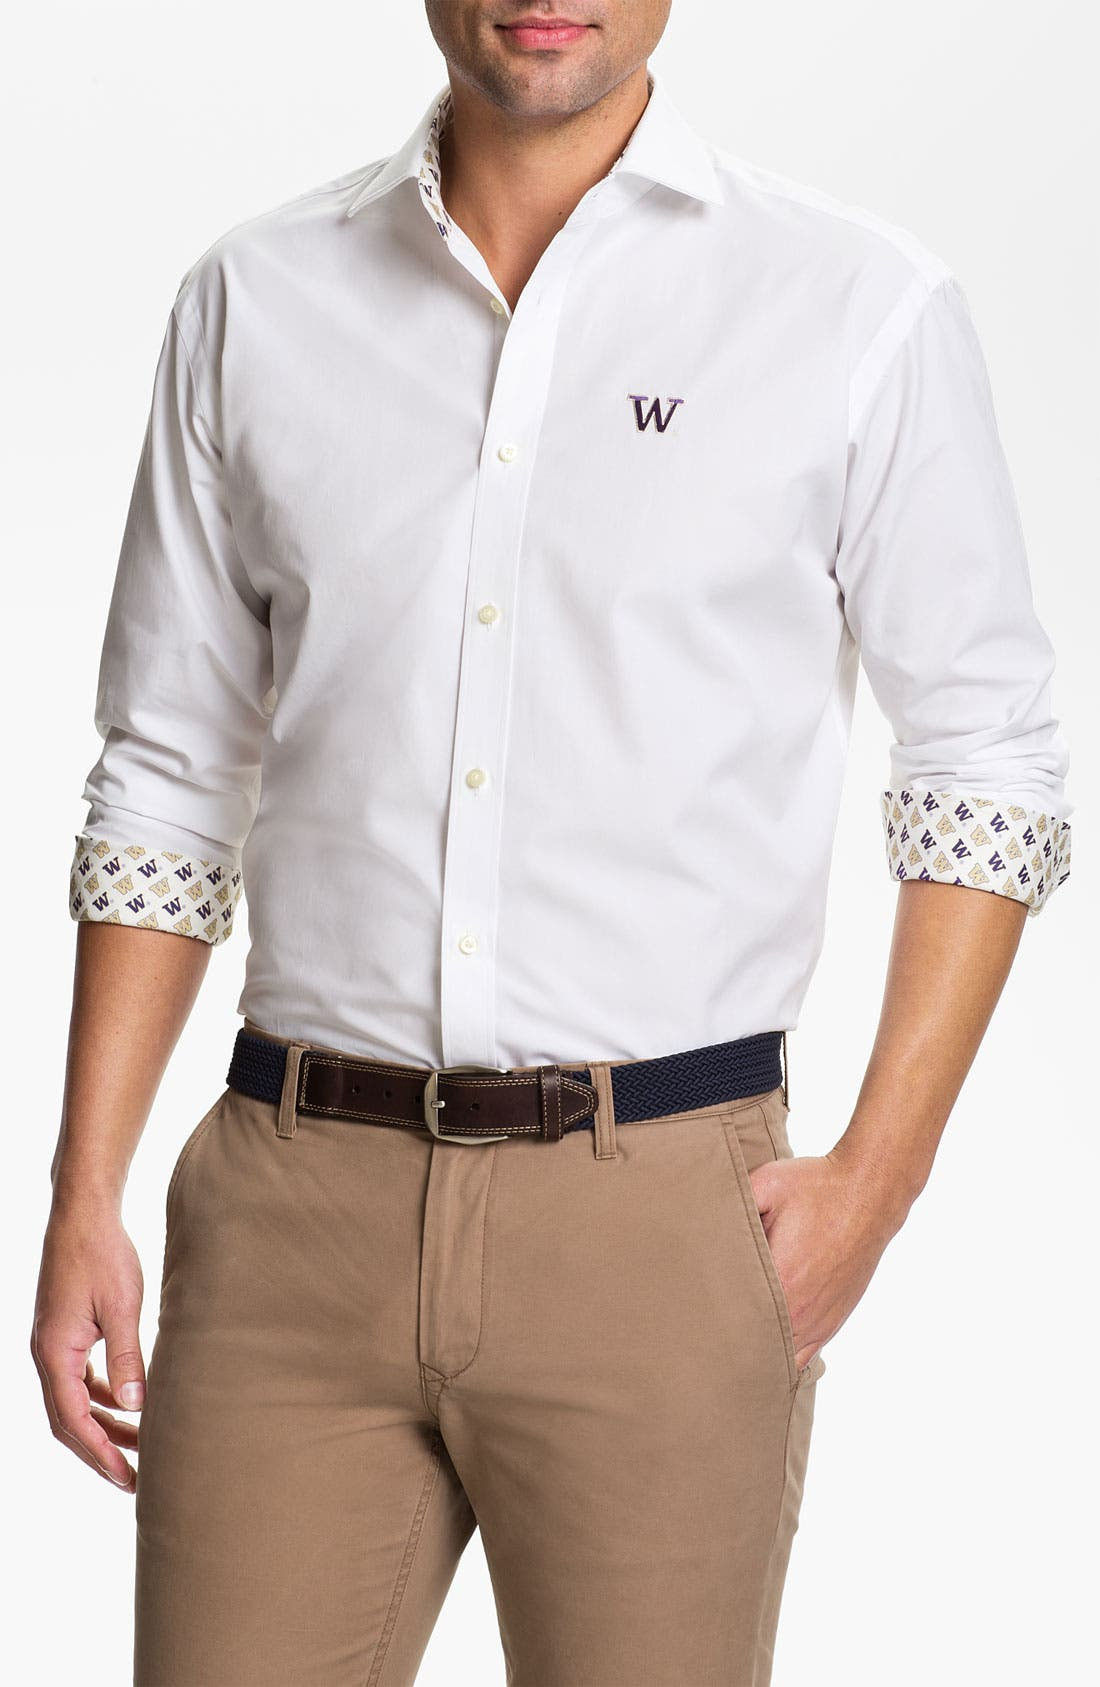 Alternate Image 1 Selected - Thomas Dean 'University of Washington' Traditional Fit Sport Shirt